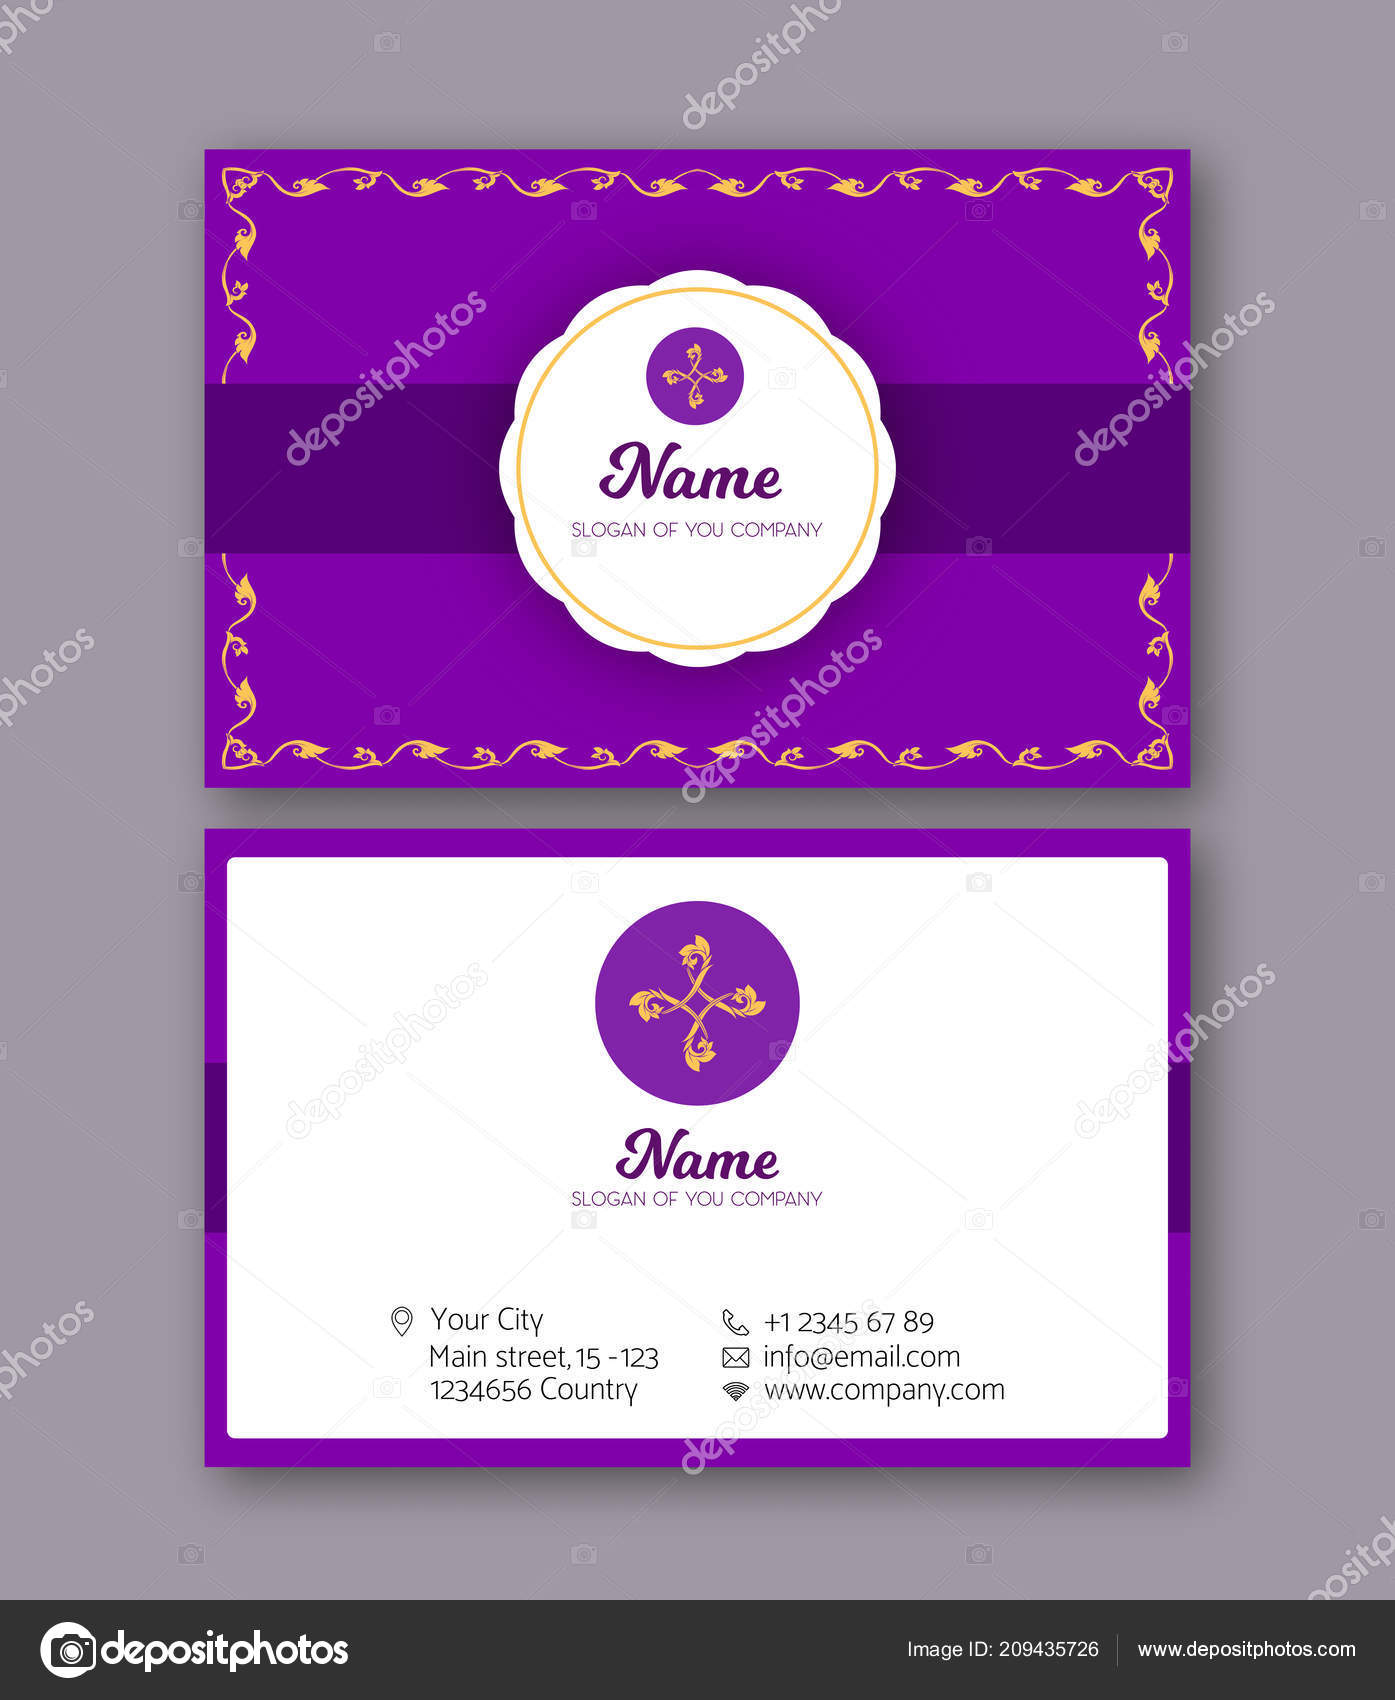 A Template For The Two Sides Of The Business Card Decorated Wi